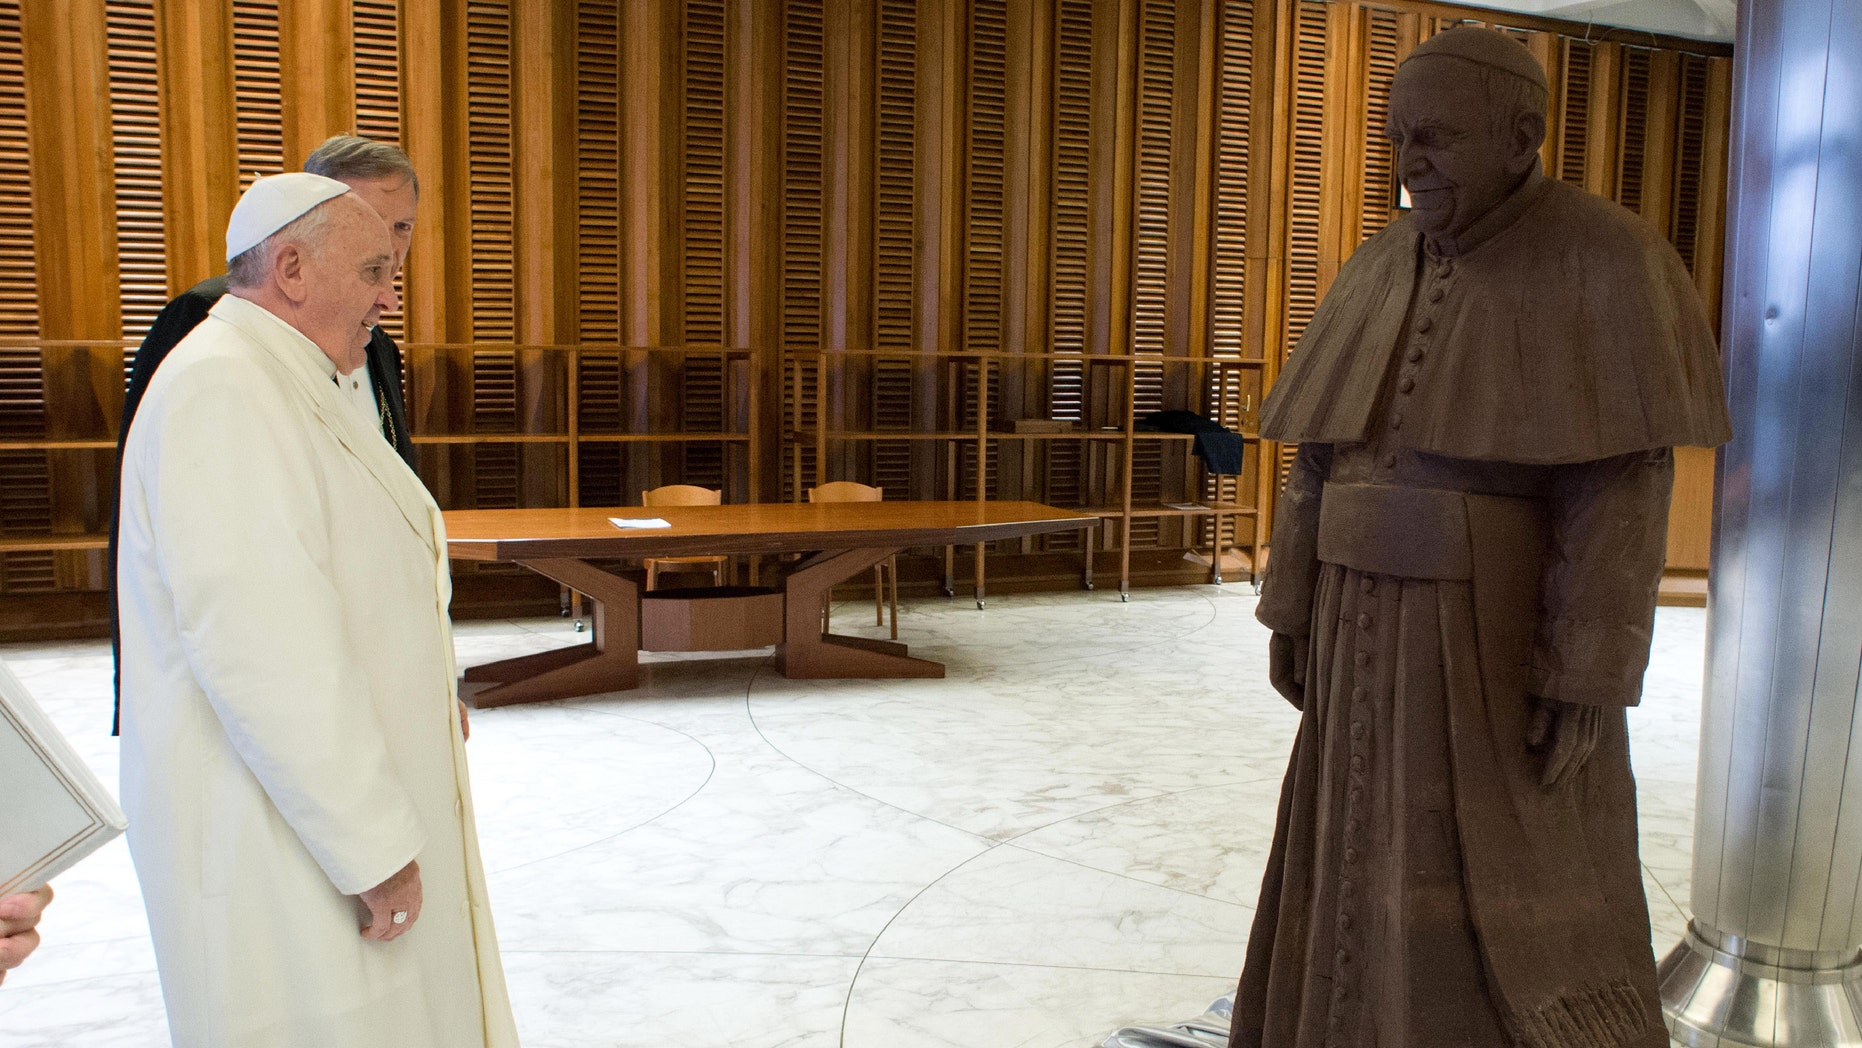 Feb. 6, 2014 - Pope Francis stands in front of a lifesize statue of chocolate of himself. The statue, made with 1.5 tons of cocoa, was presented to the Pope during the general audience of Feb. 5.